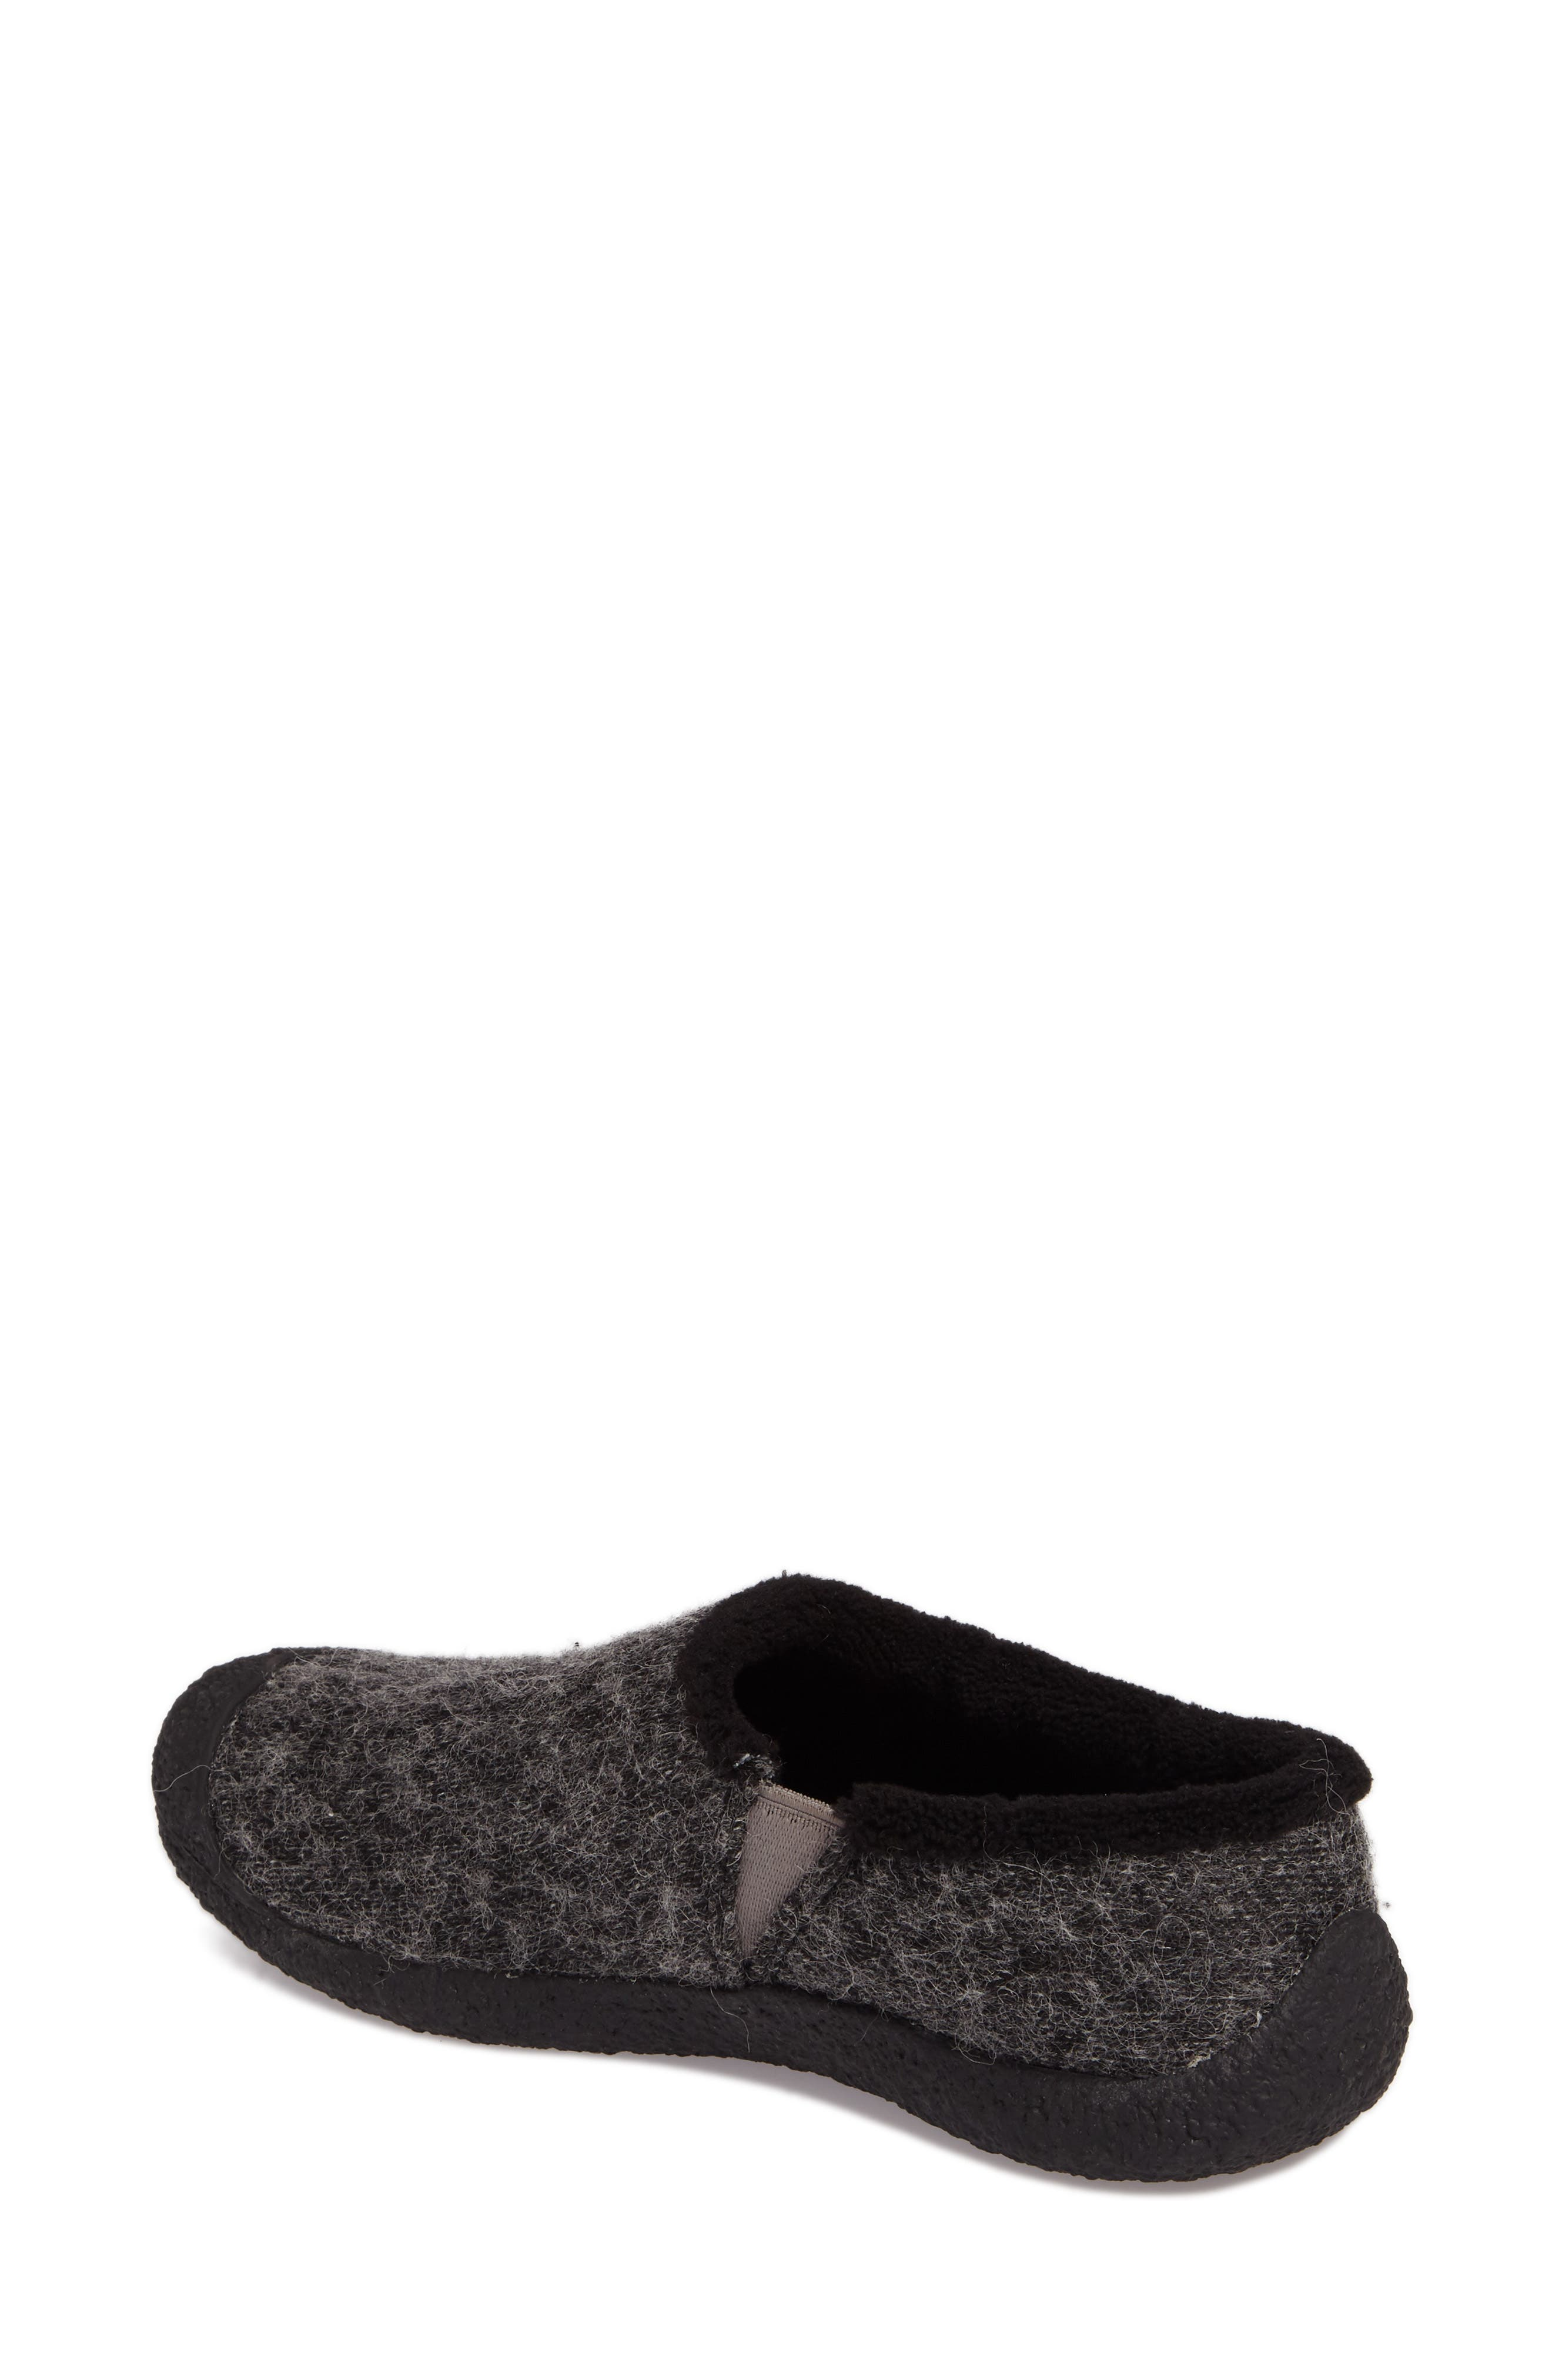 Howser Round Toe Wool Slip-on,                             Alternate thumbnail 2, color,                             001